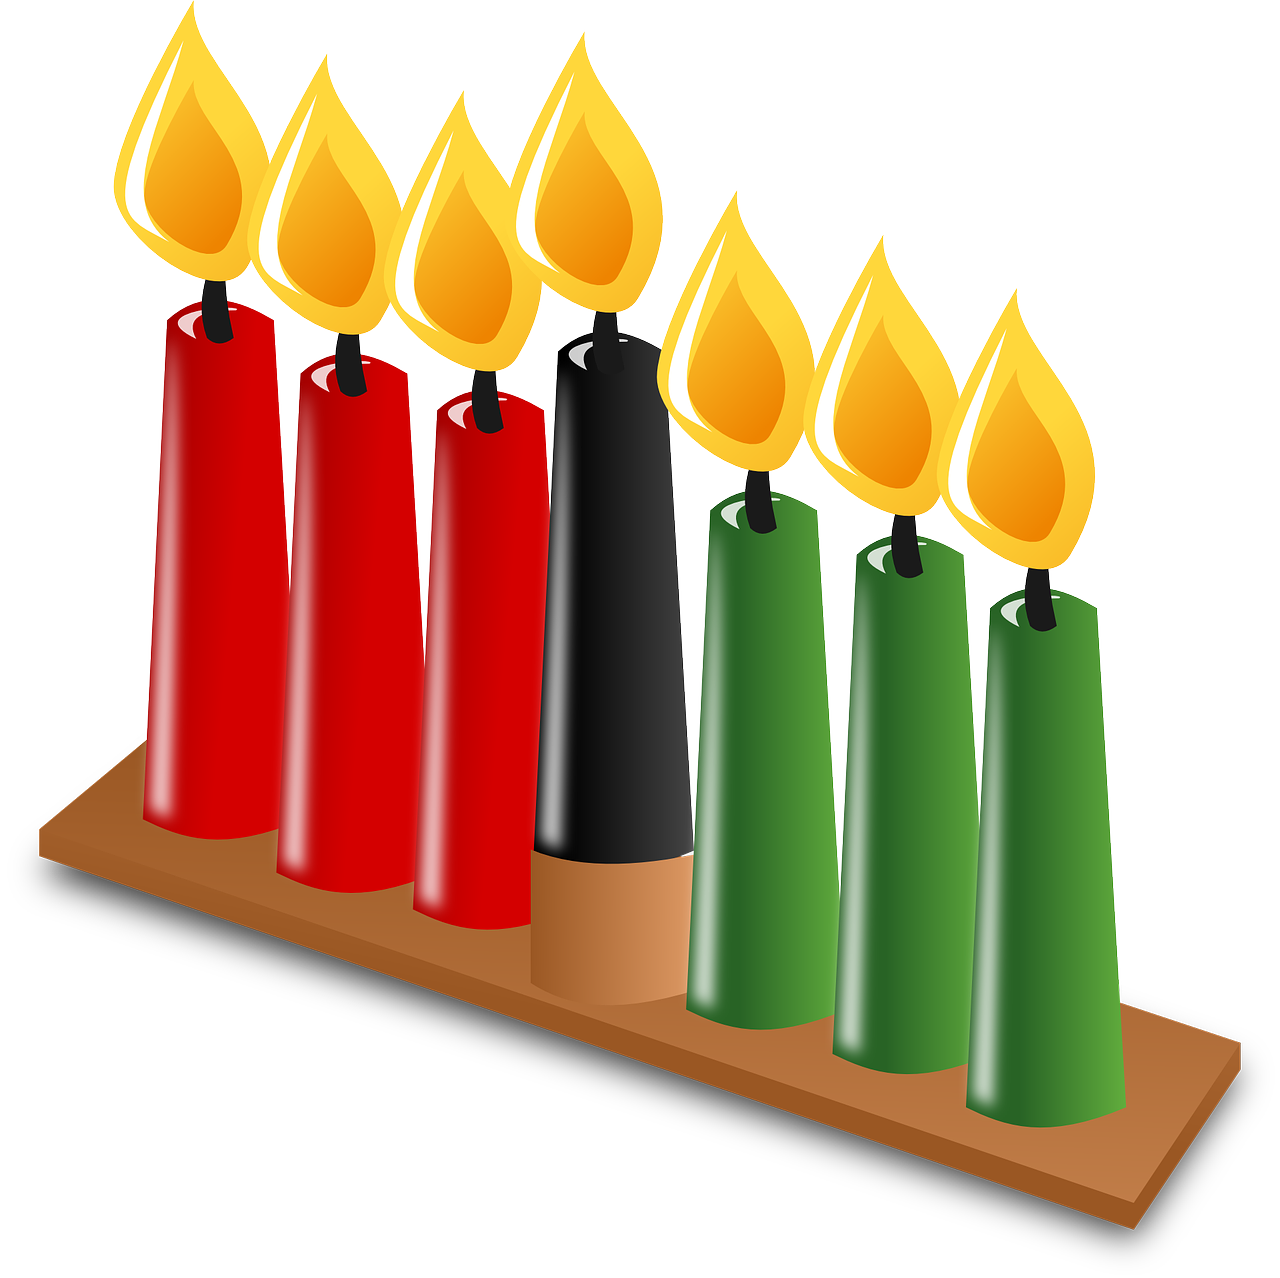 svg royalty free download Go archives southside parenting. Kwanzaa clipart kwanzaa food.